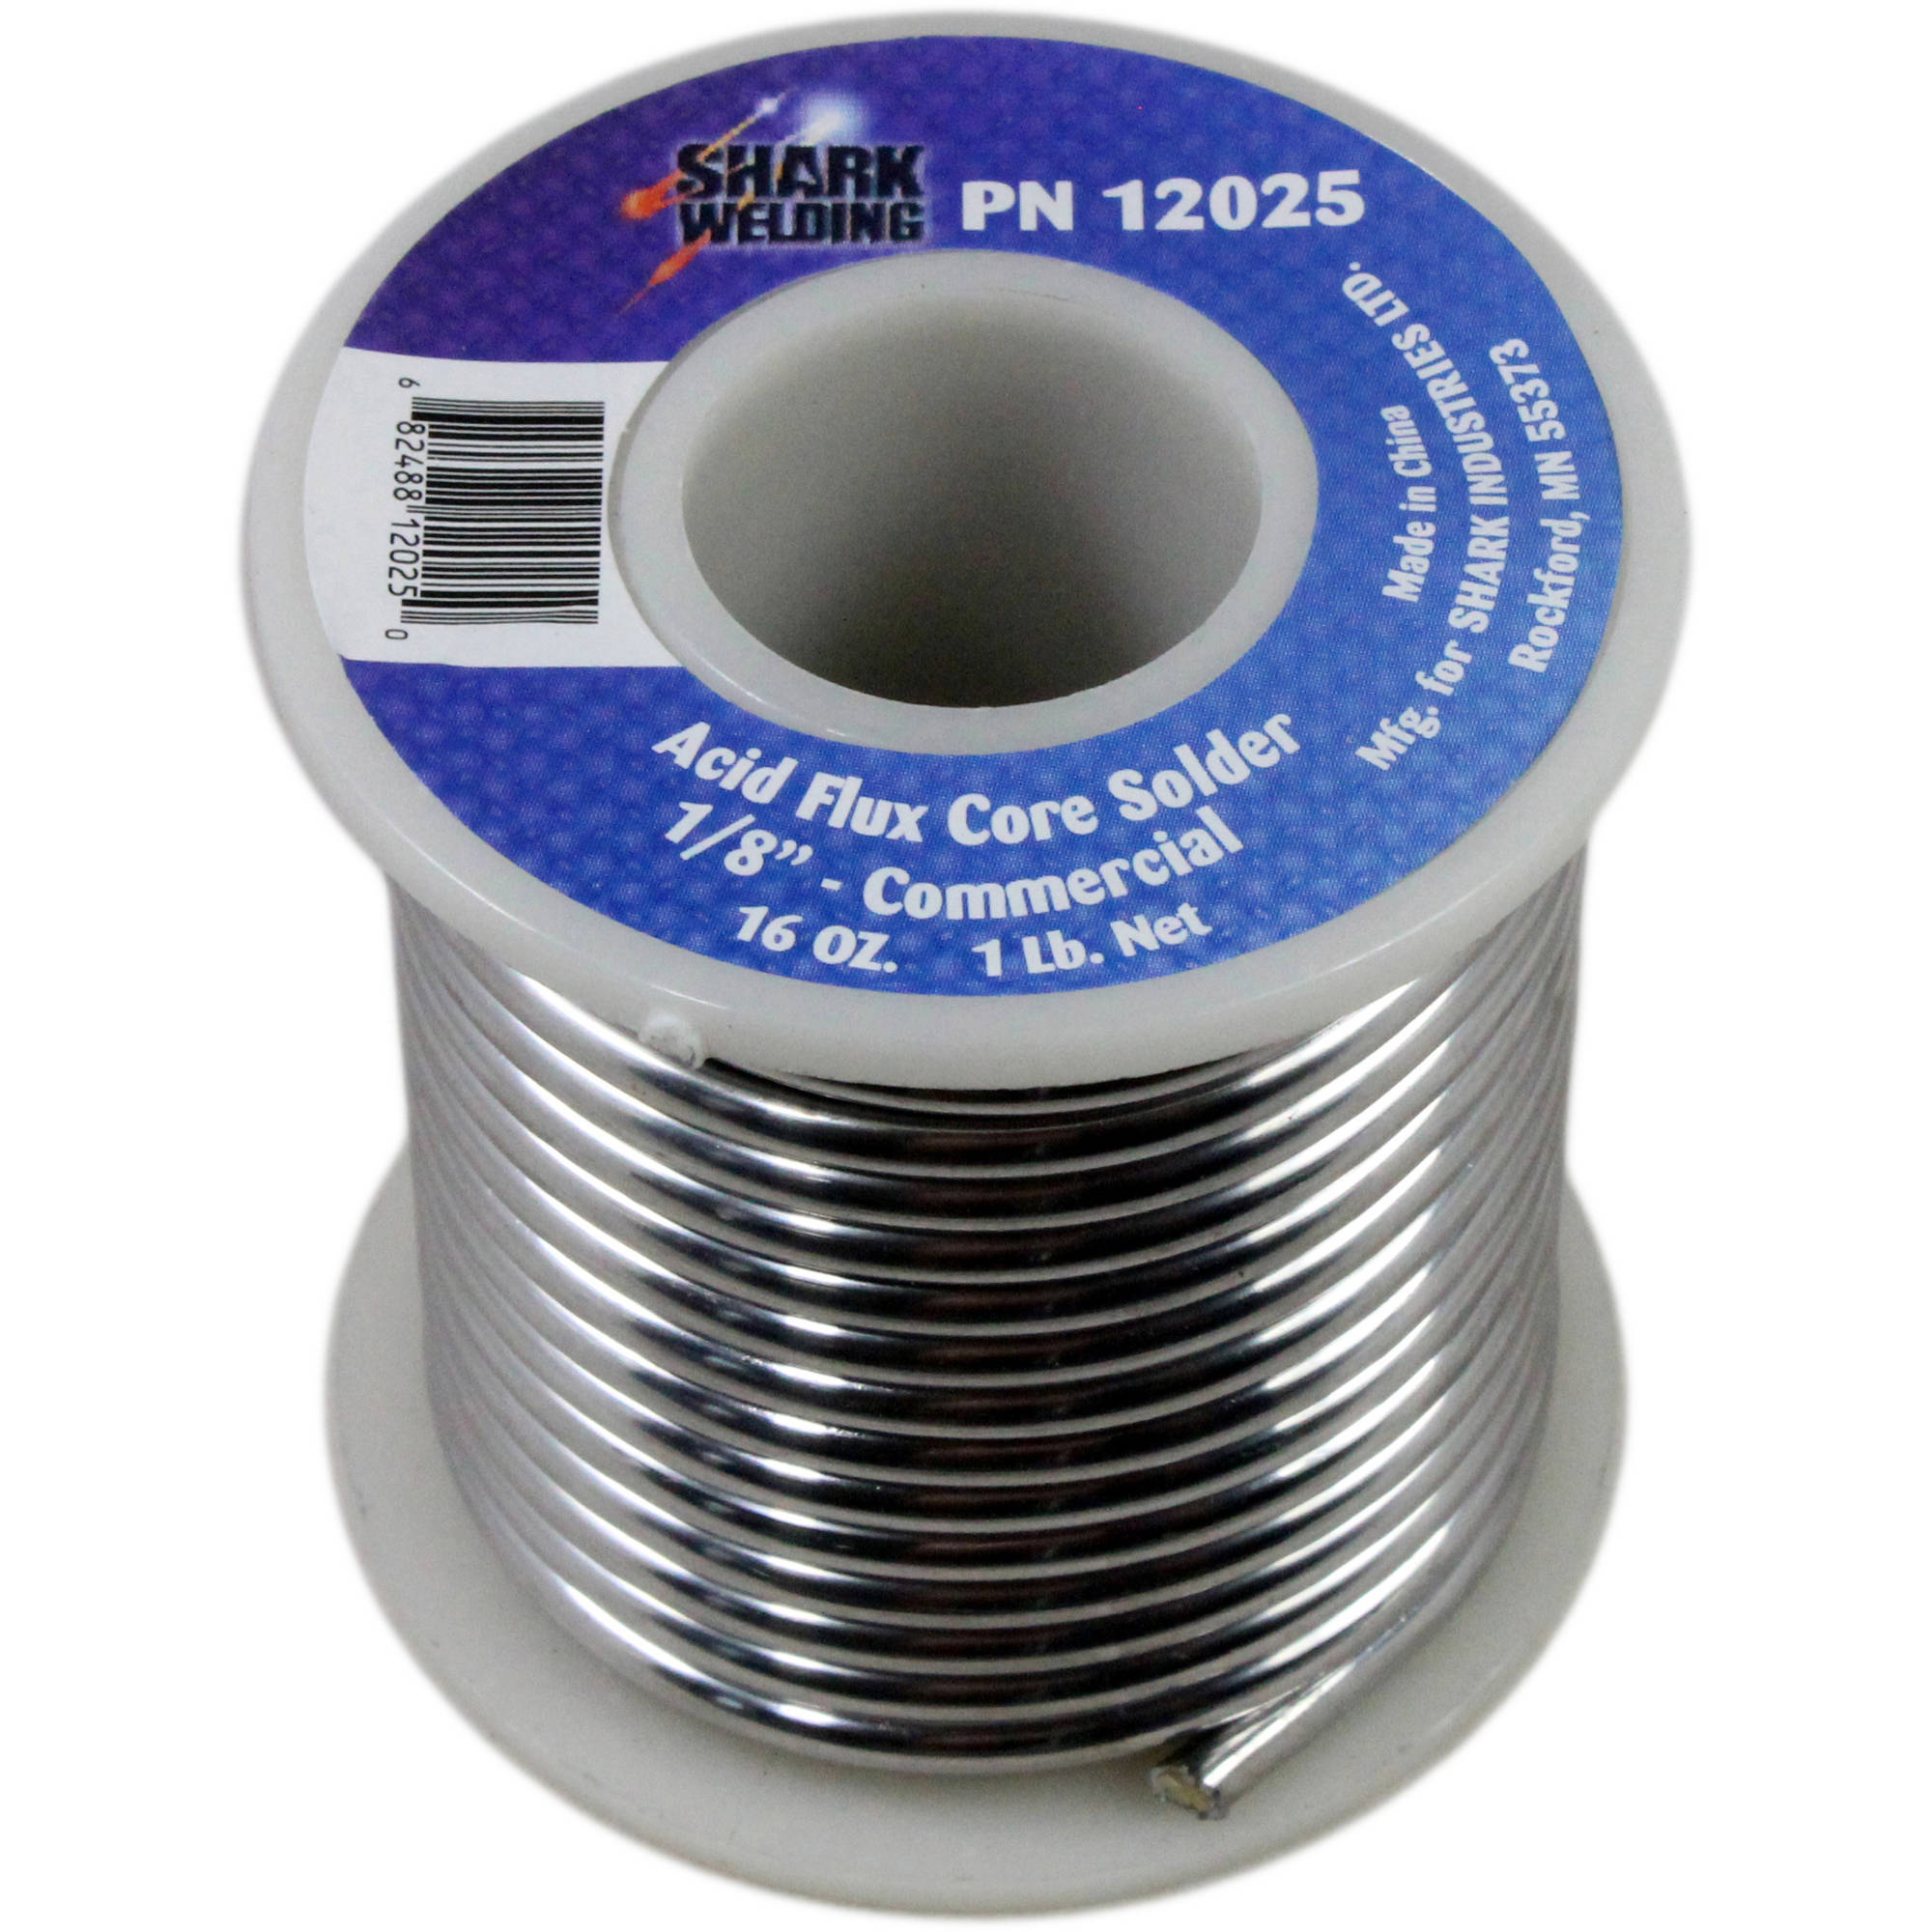 "Shark 0.125"" Acid Flux Core Solder, 1 lb"